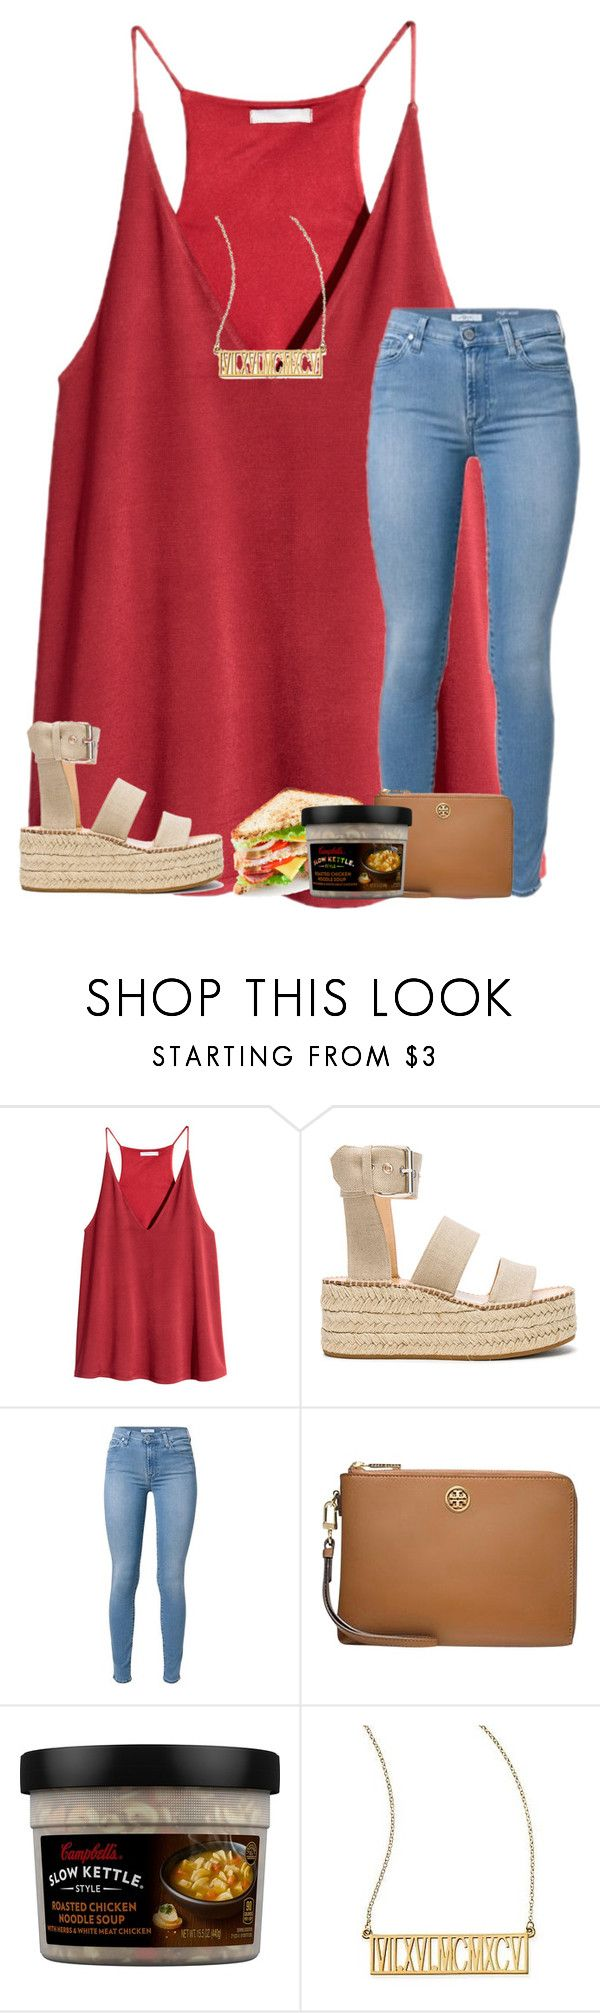 """so long;so worth it"" by livnewell ❤ liked on Polyvore featuring H&M, rag & bone, Tory Burch and Mark & Graham"